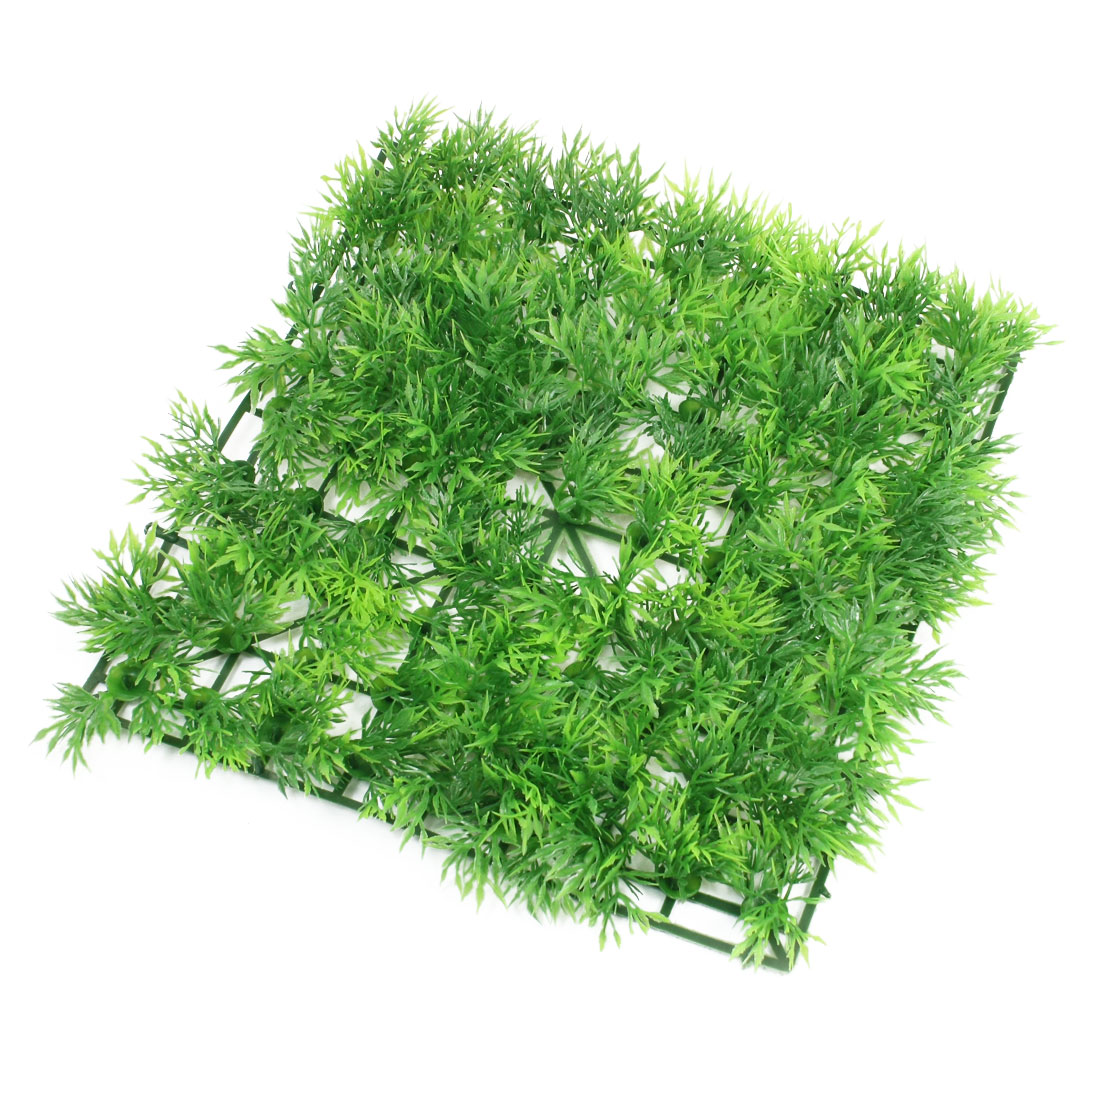 "9.1"" x 9.1"" Aquatic Green Square Artificial Grass Plant Lawn for Aquarium Fish Tank"